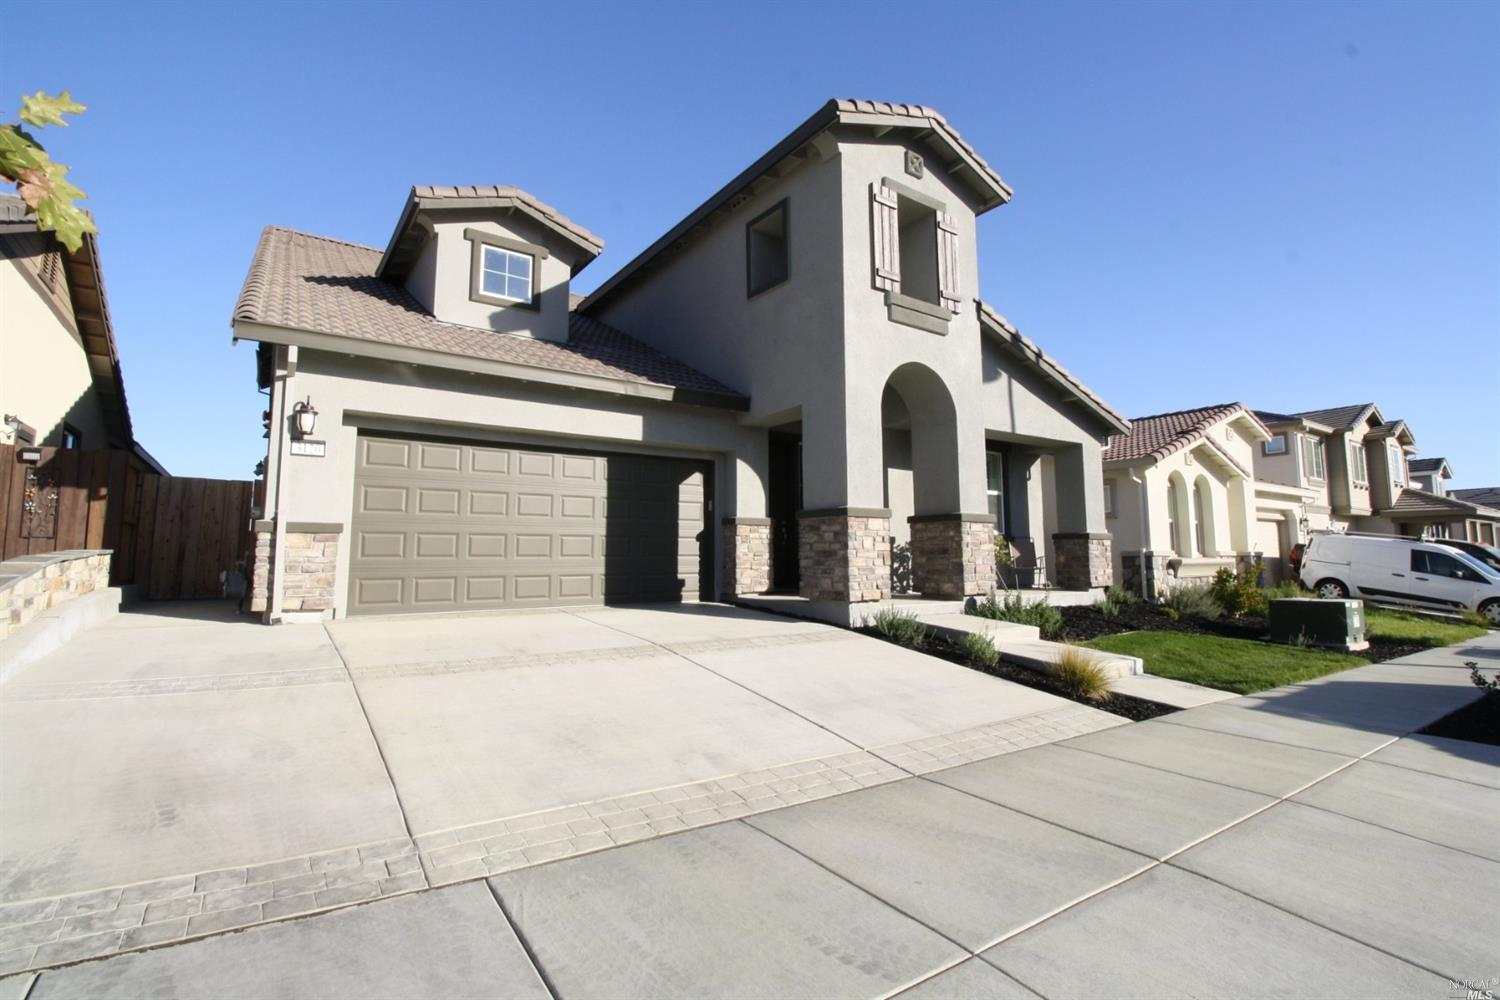 Photo of 3120 Muse Way, Fairfield, CA 94533